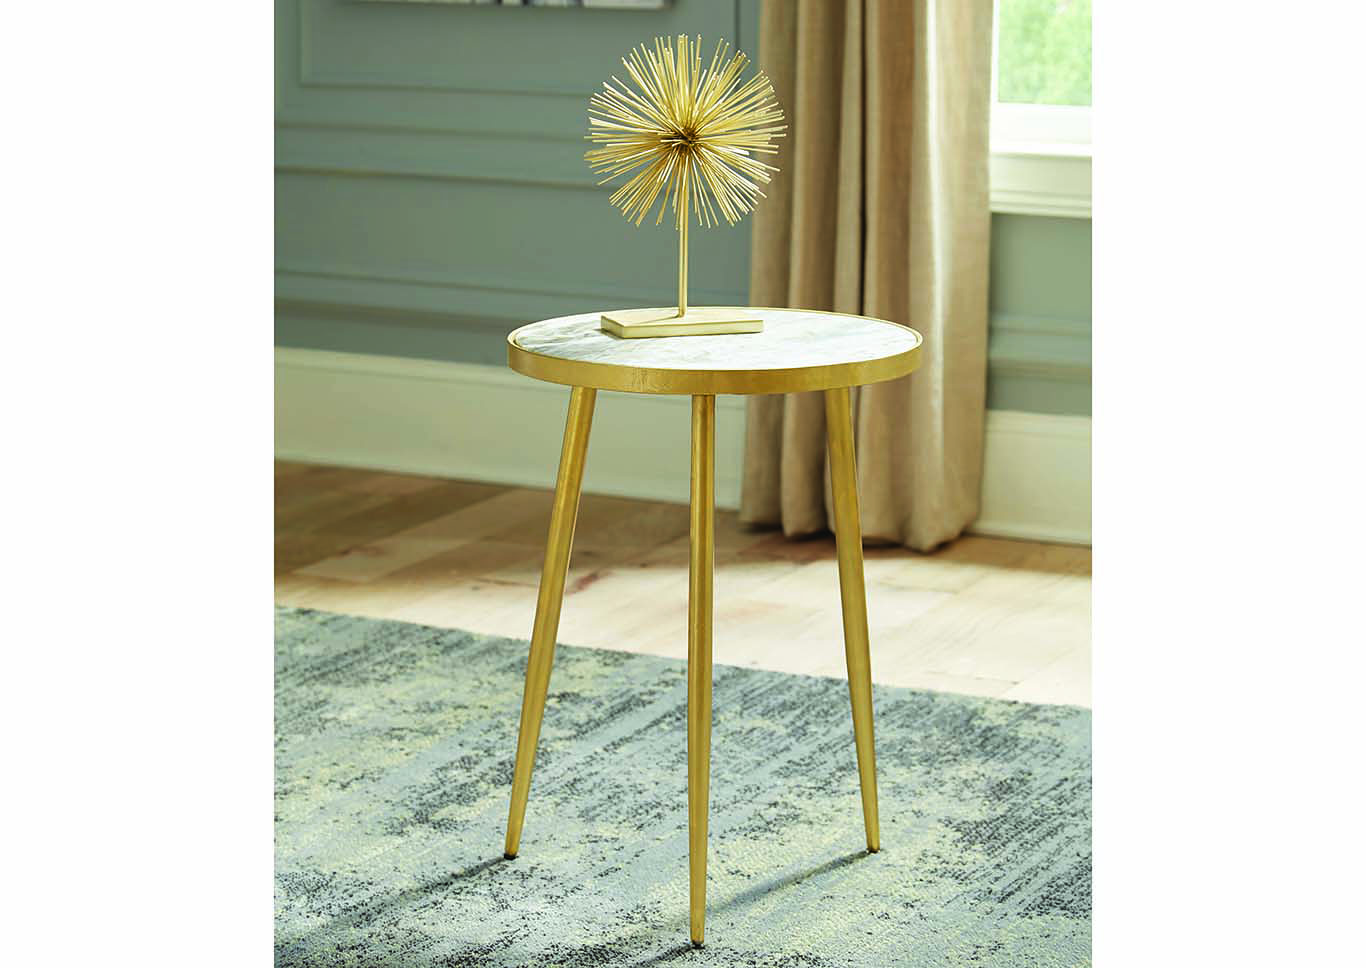 avenue furniture gold finish round top accent table coaster wire side square cloth tablecloths metal tray coffee ashley desk counter lamp wicker garden industrial look end tables